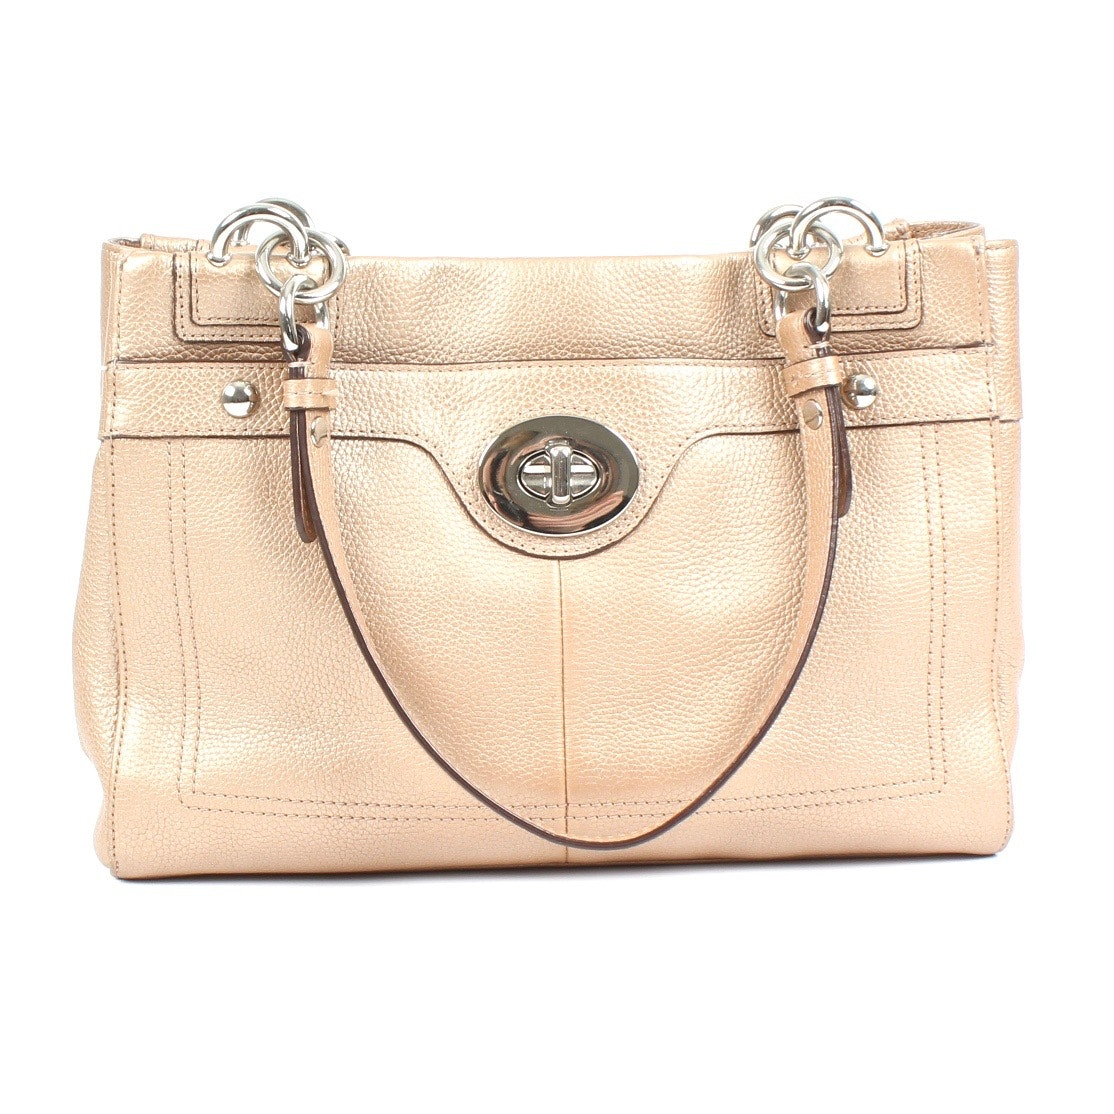 Coach Penelope Pebbled Leather  Handbag